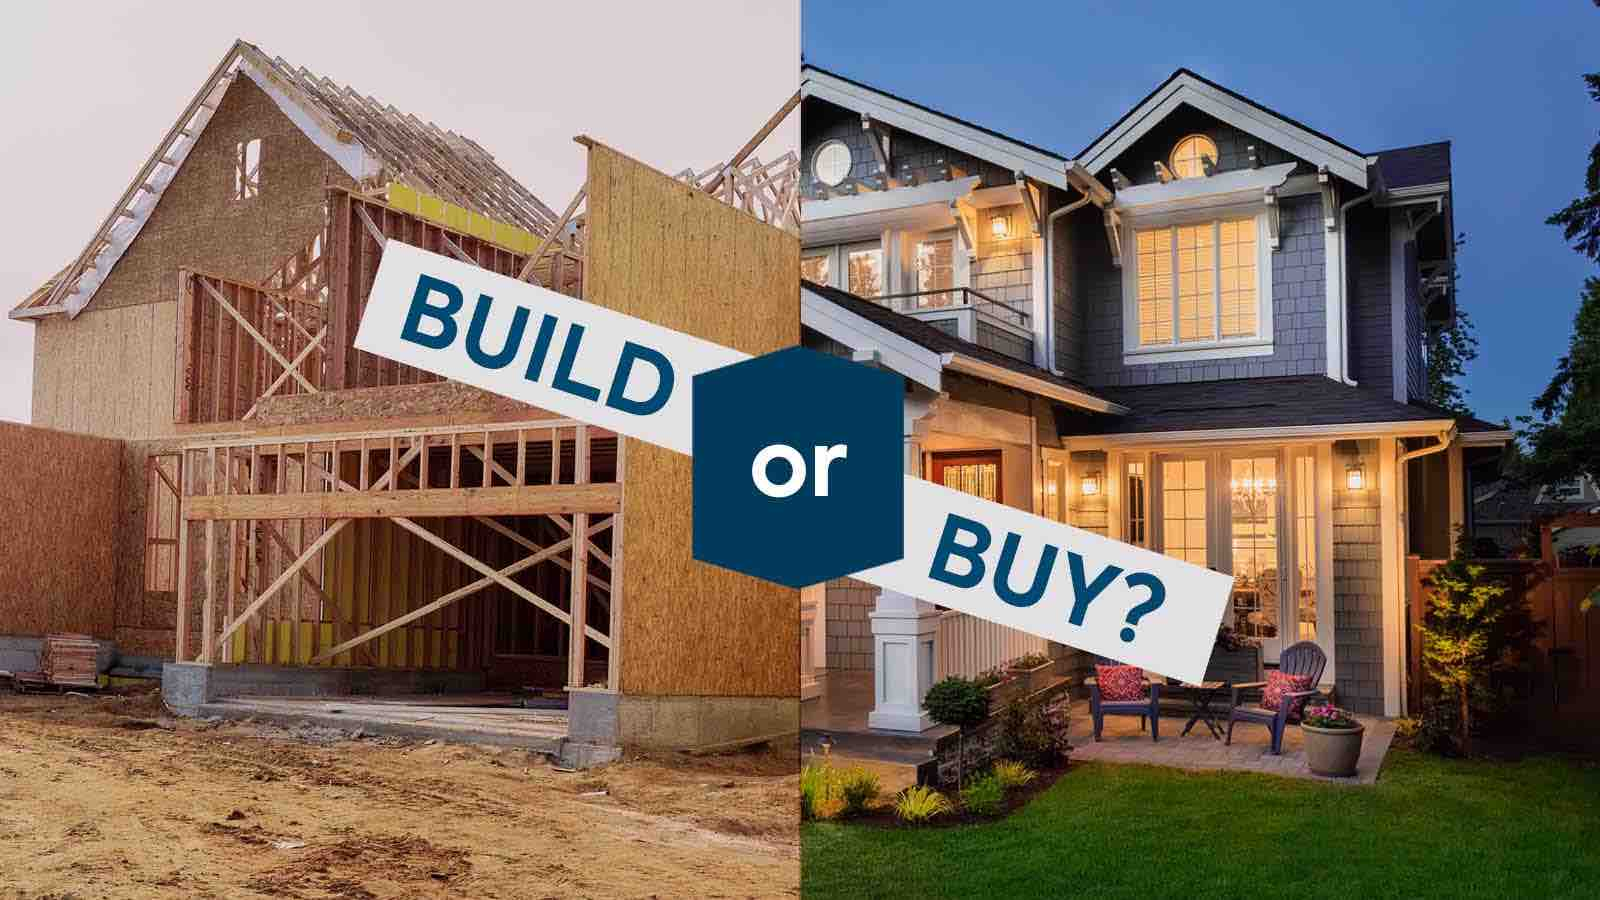 Should I Build or Buy a House?